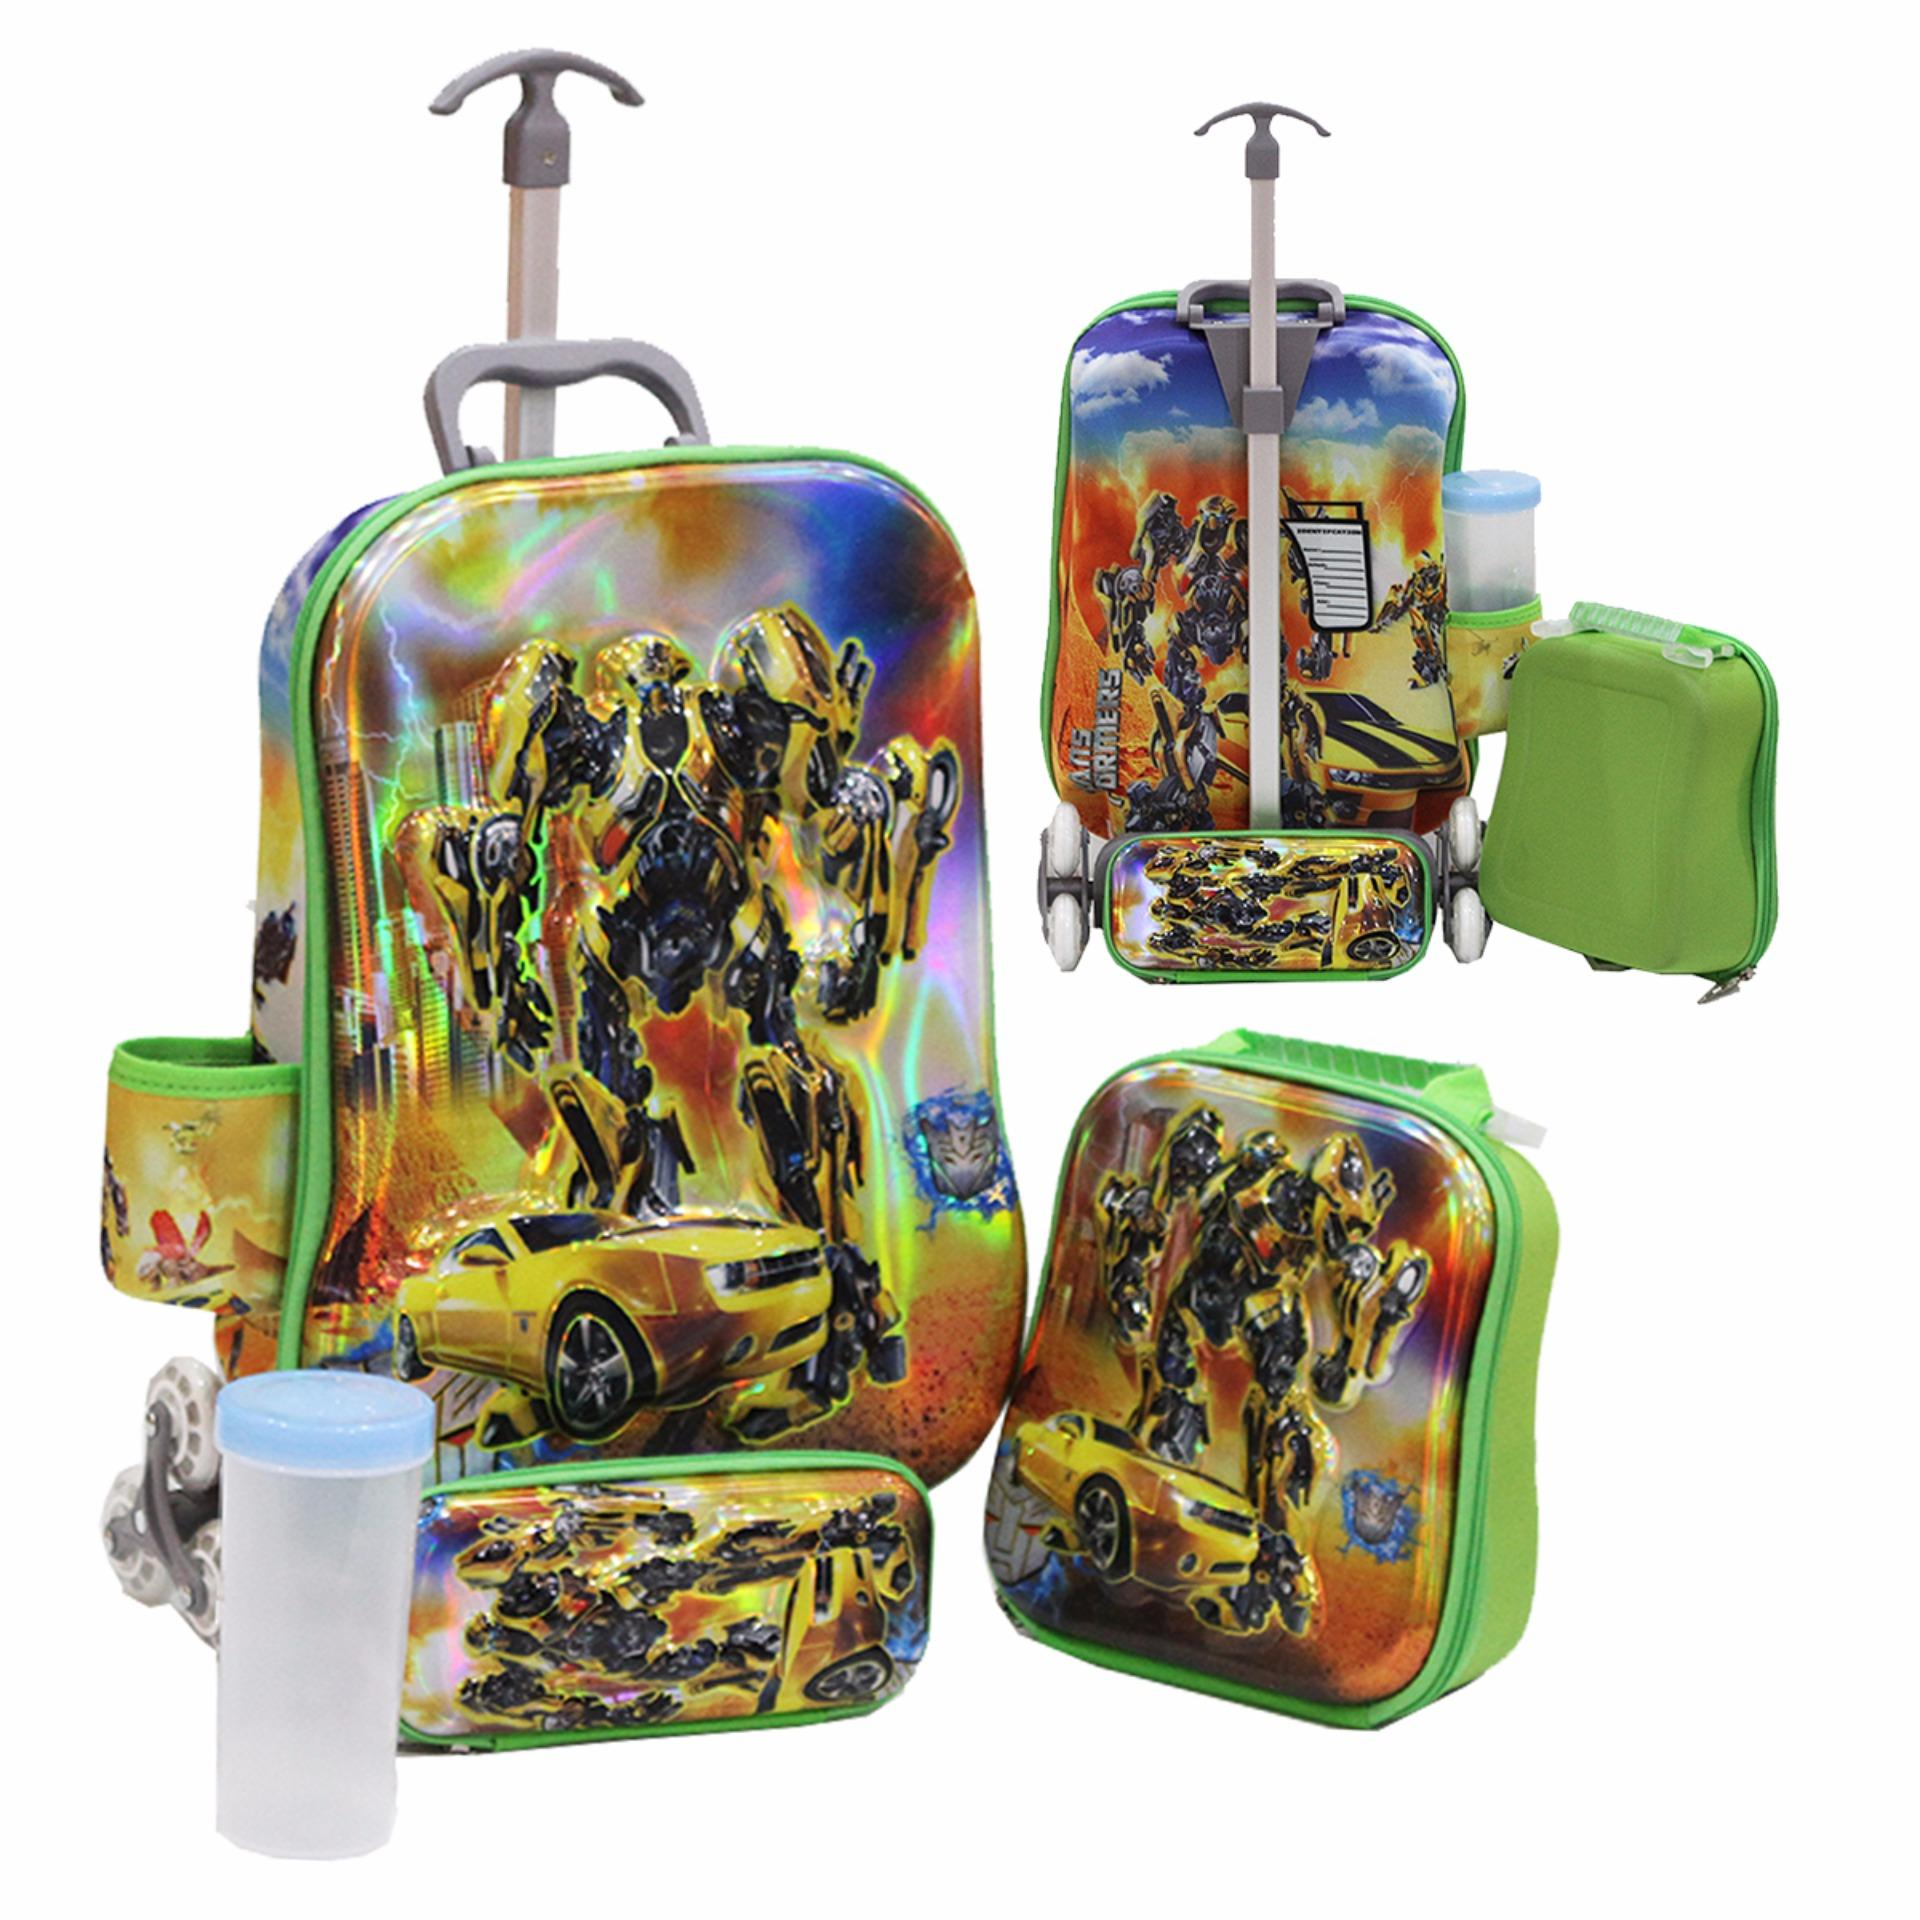 Onlan Transformers Bumble Bee 6D Timbul Anti Gores Tas Anak 4In1 Set 6 Roda Import Onlan Diskon